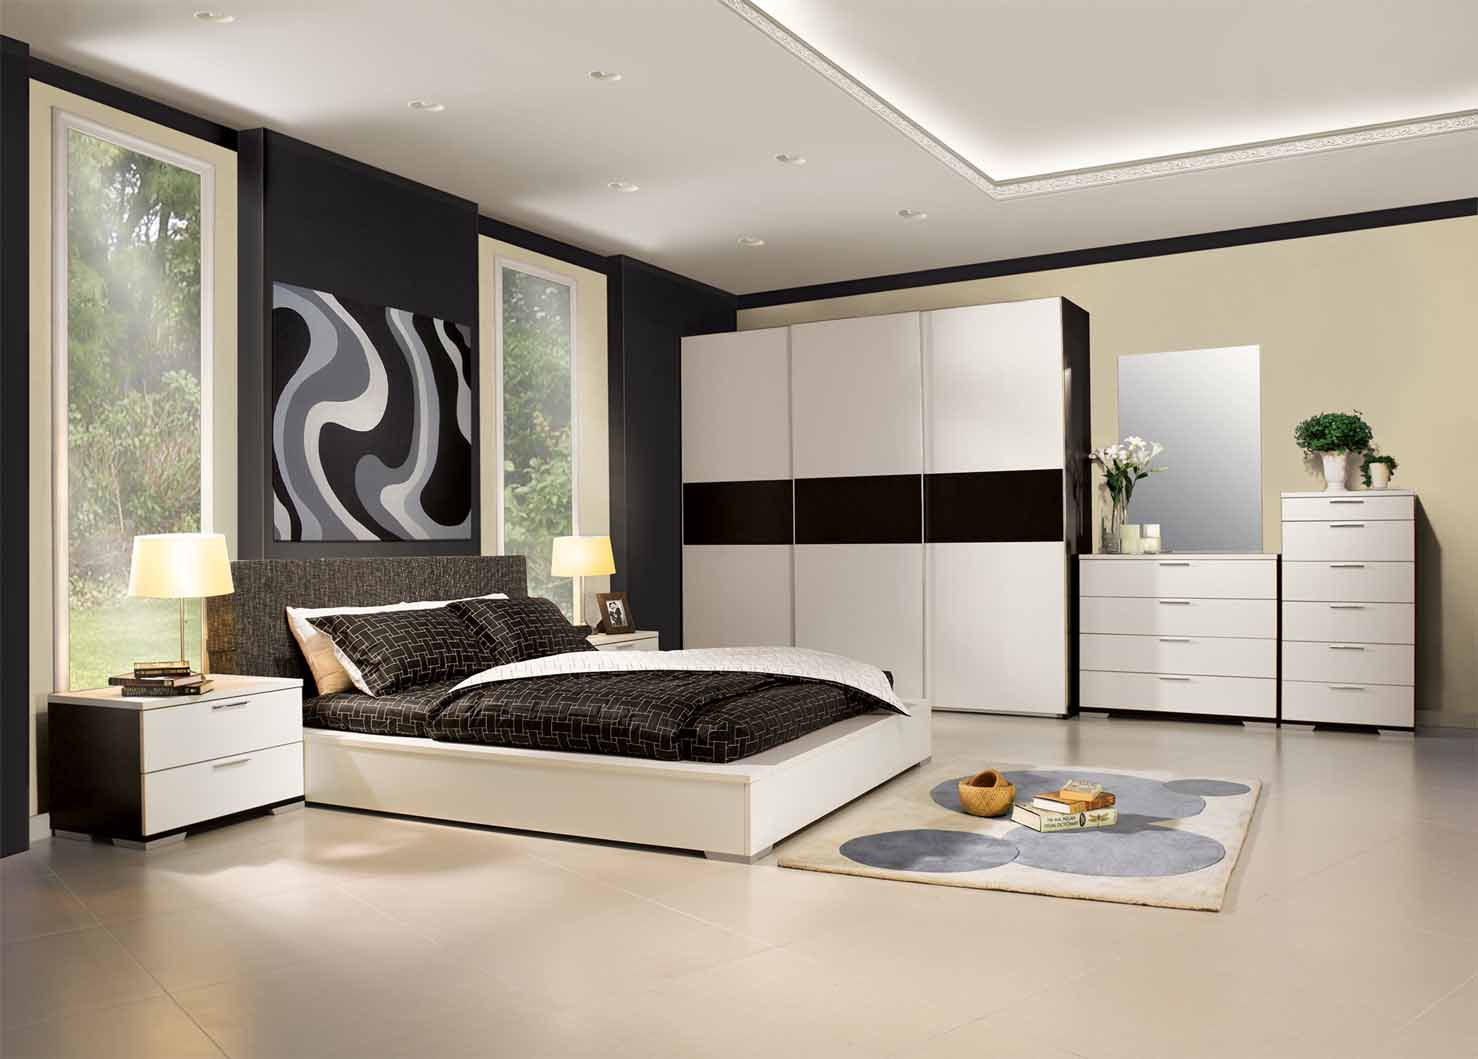 modern bedroom design fouadtalal. Black Bedroom Furniture Sets. Home Design Ideas